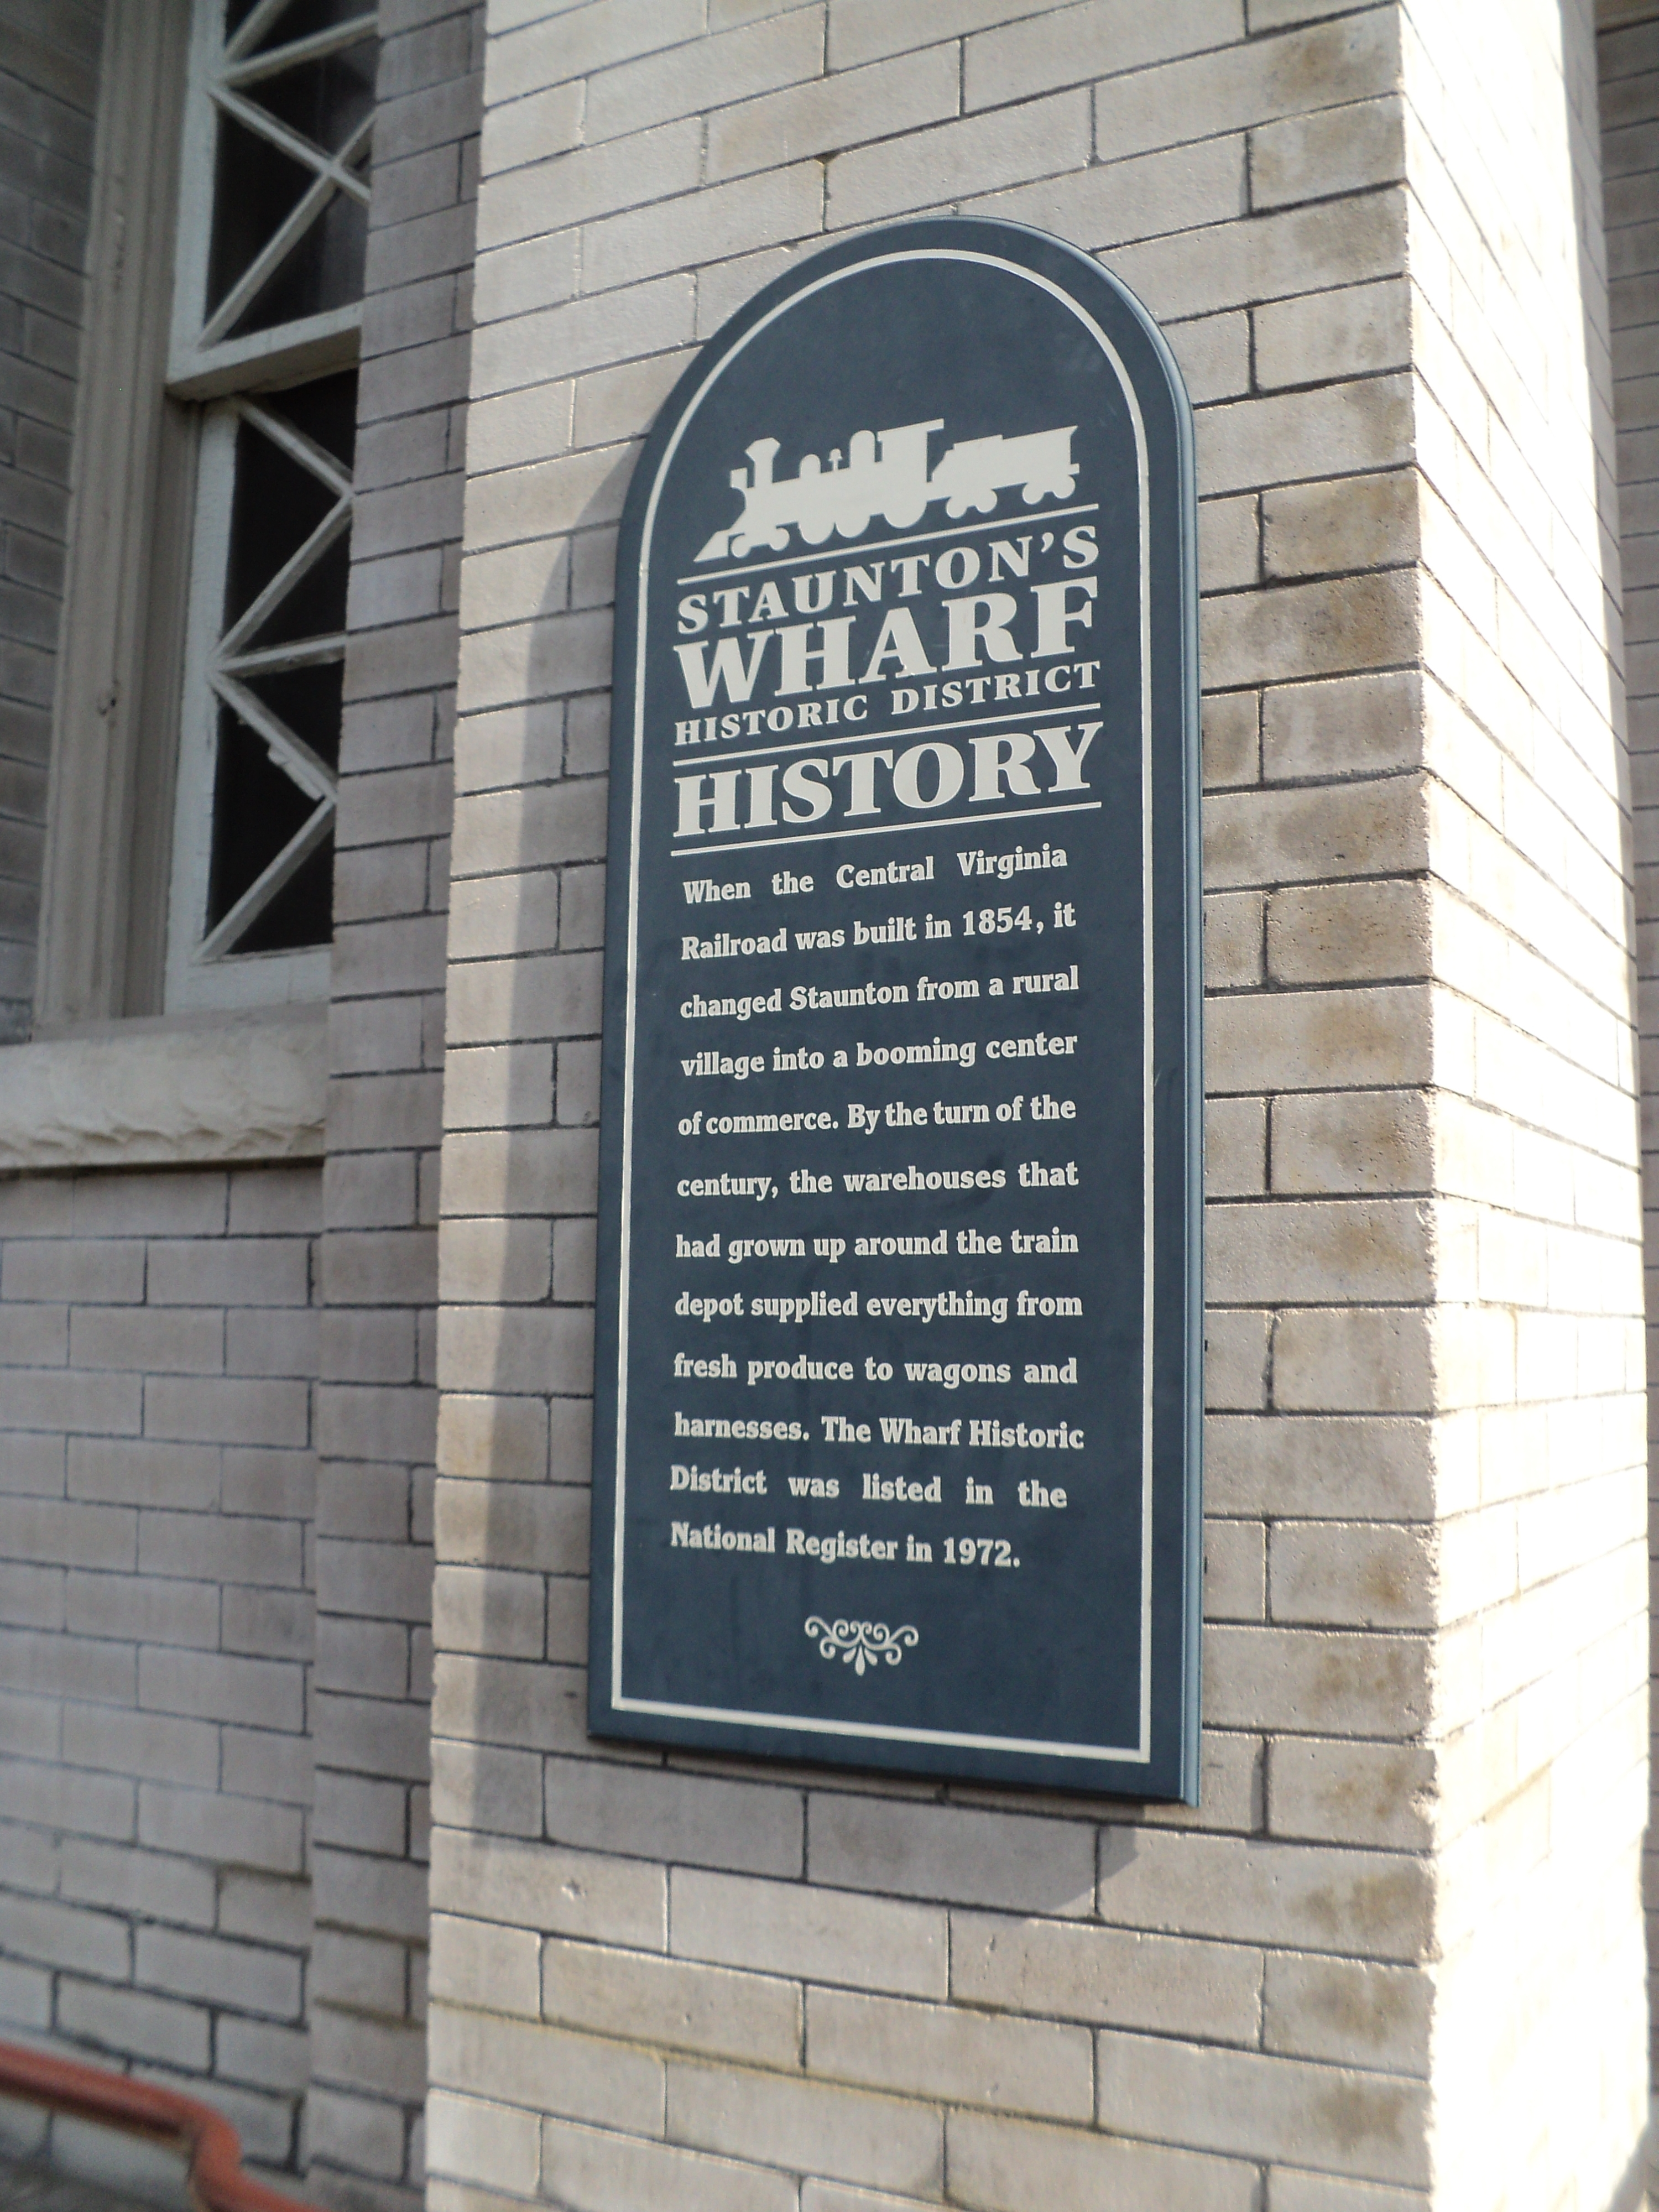 Staunton's Wharf Historic District History Marker